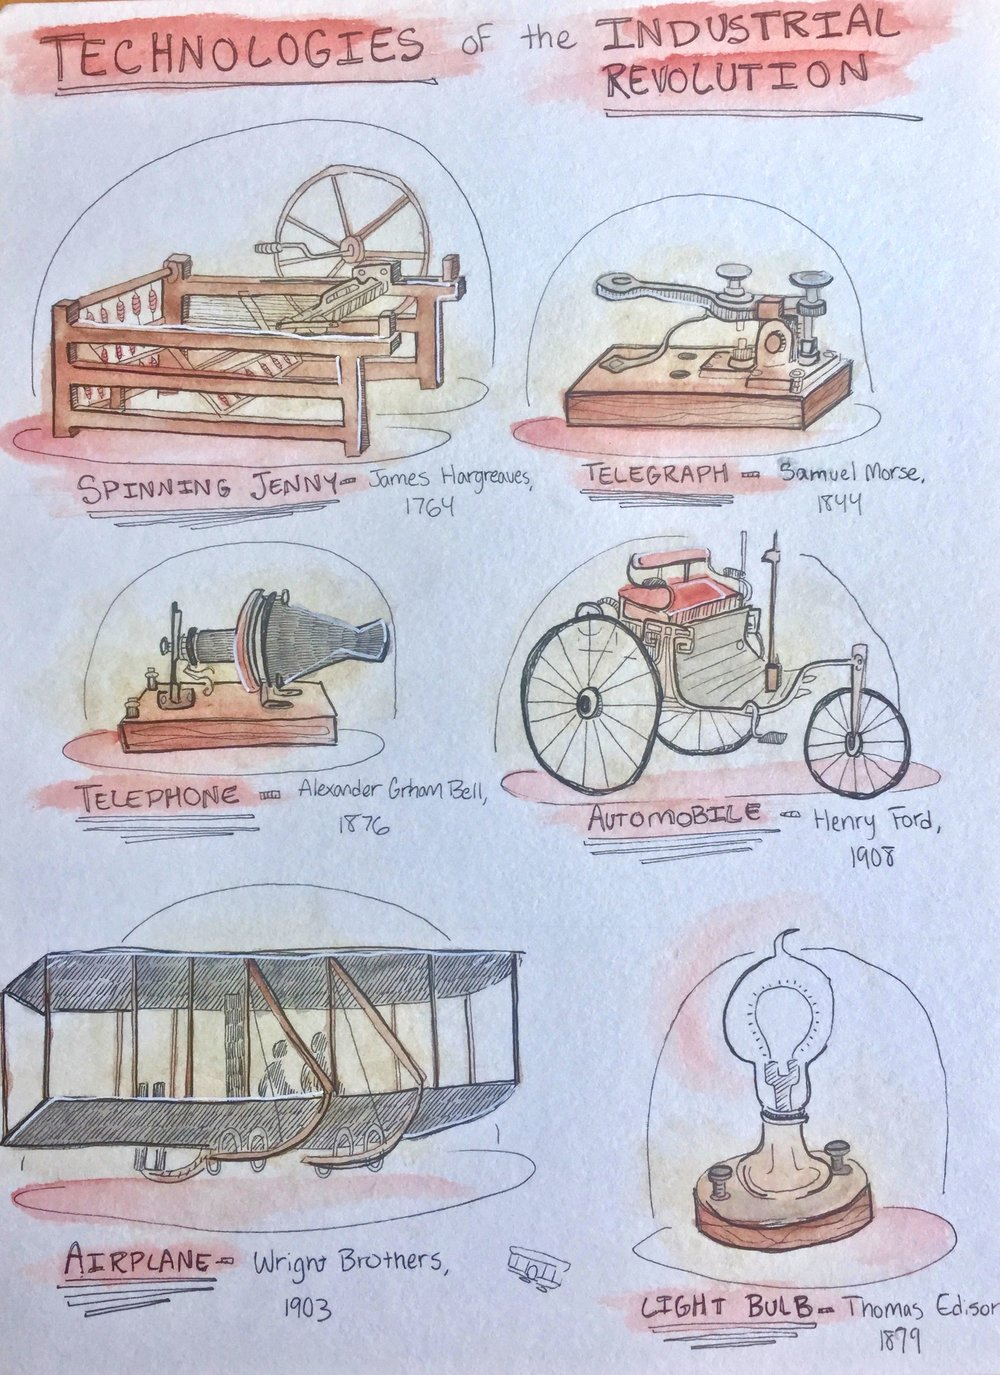 Diagrams, charts and illustrations are included in the Thematic Lesson book